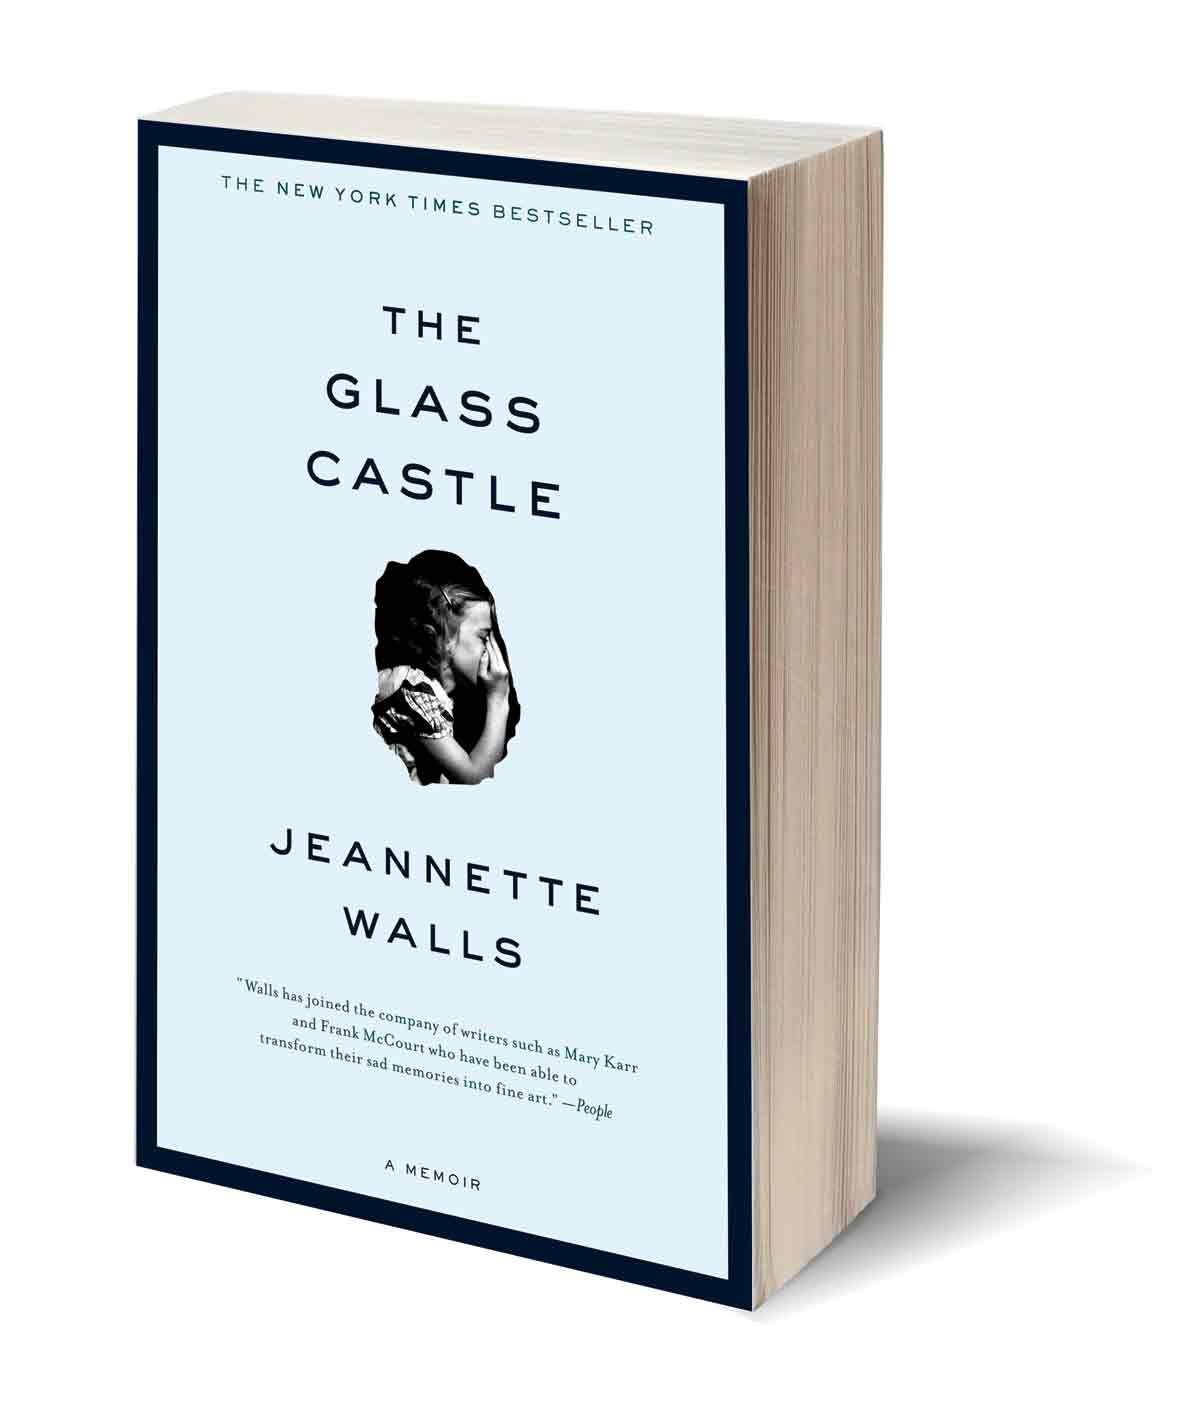 the irresponsibility of rose mary in the book the glass castle by jeanette walls Buy a cheap copy of the glass castle book by jeannette walls  rex and rose  mary walls had four children  the glass castle - a memoir [large print]  the  good thing is, children do not realize how irresponsible their parents can be.